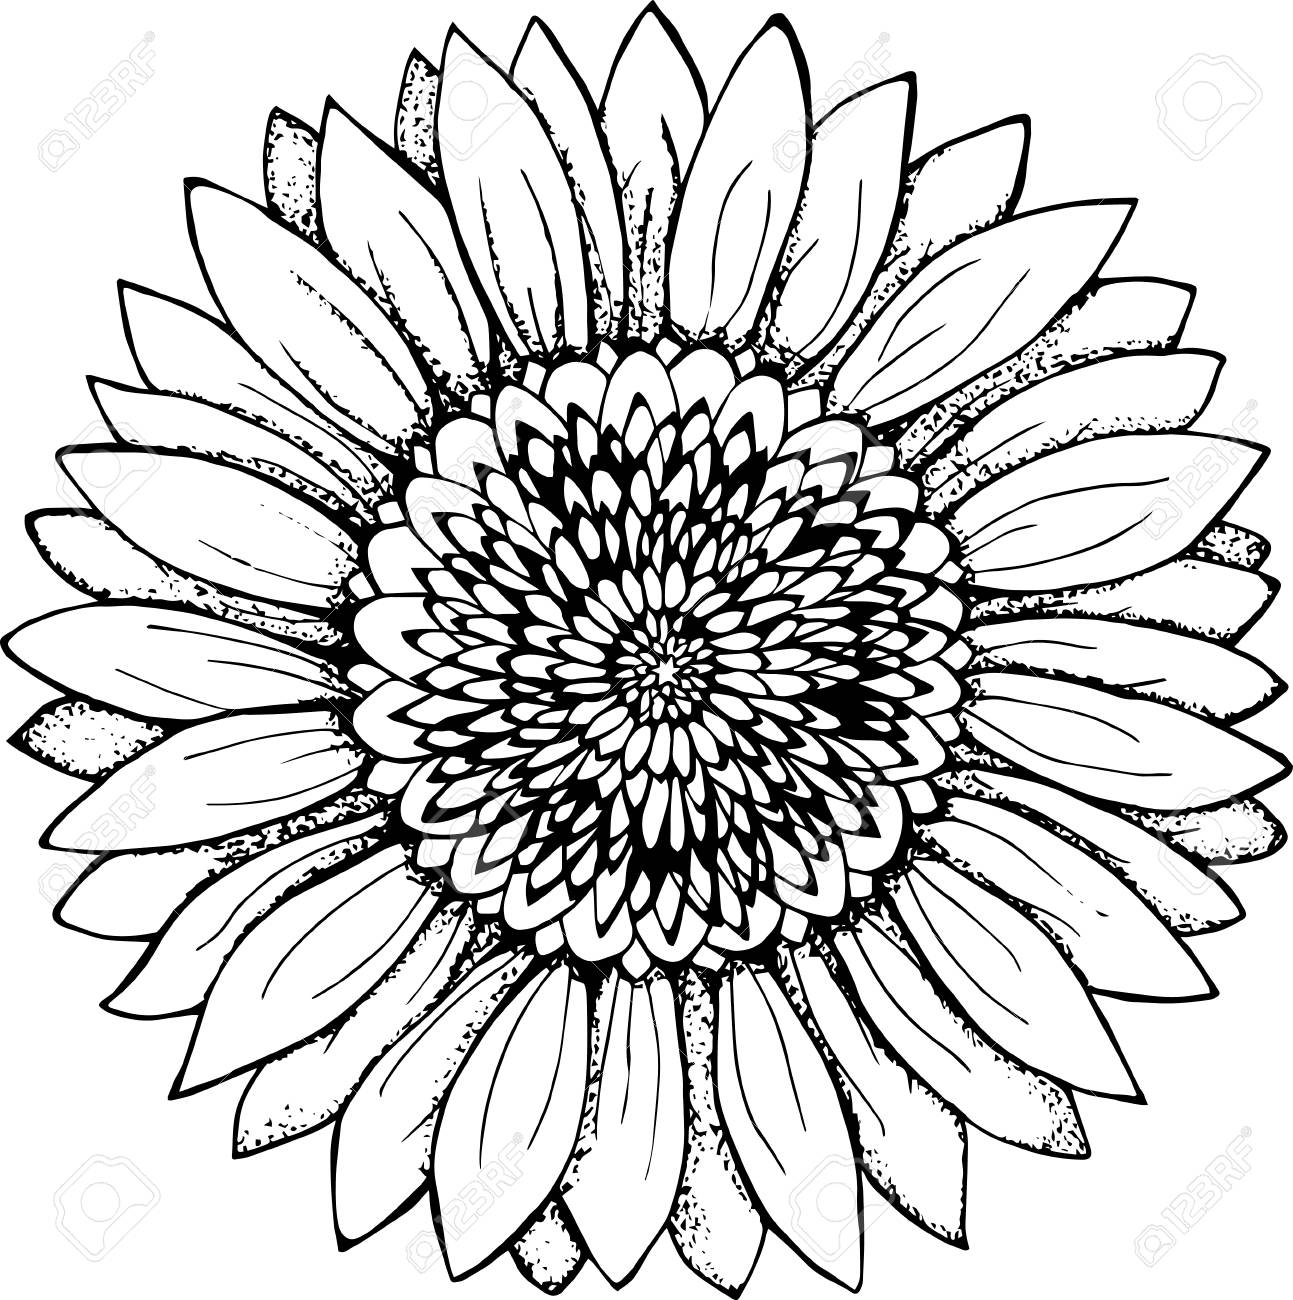 Sunflower black and white drawing at getdrawings free for 1293x1300 black and white picture of a sunflower flower illustration mightylinksfo